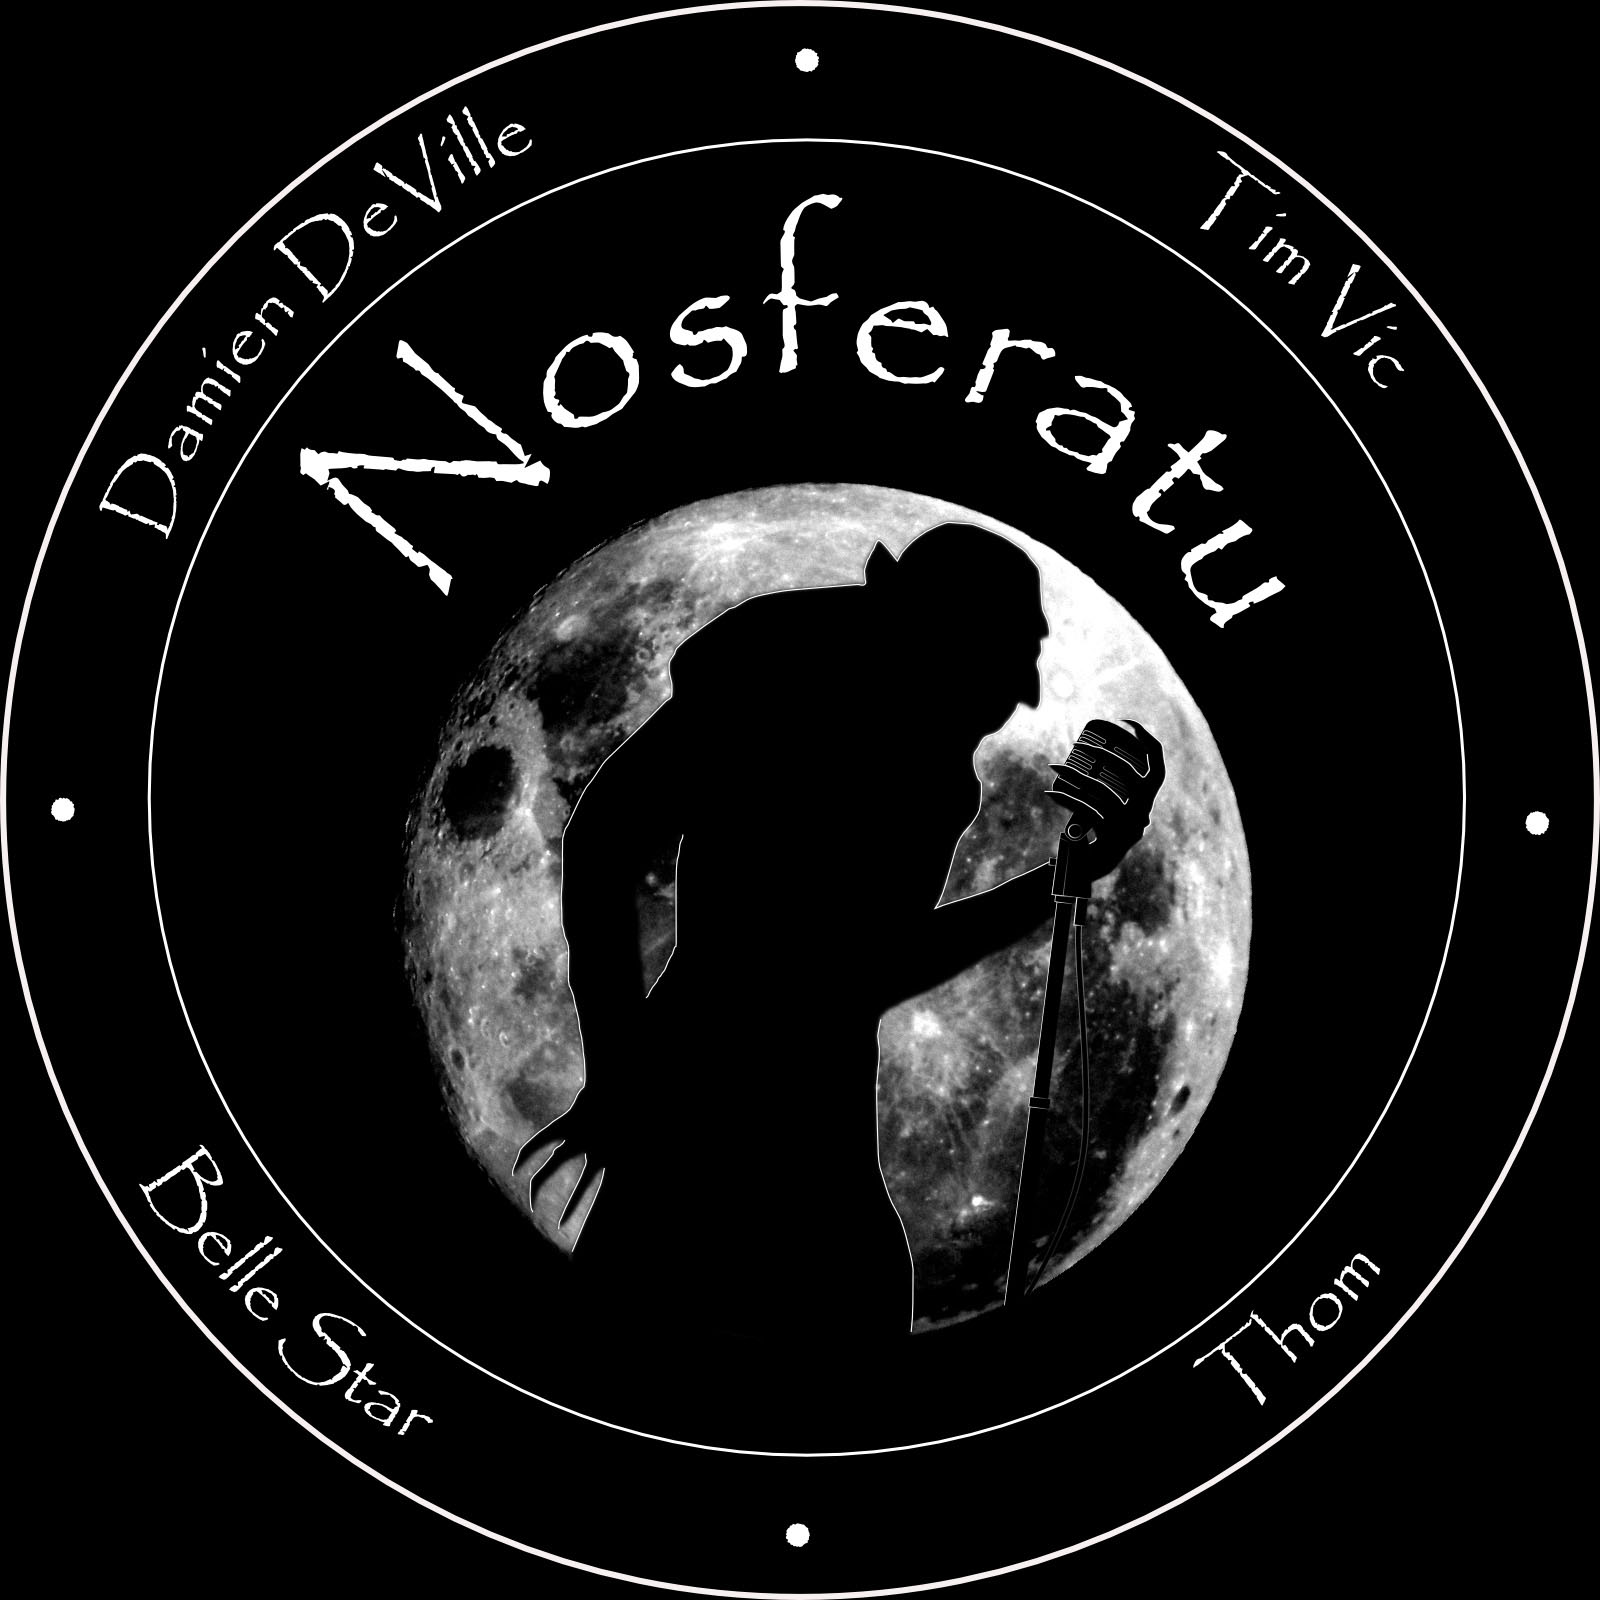 NOSFERATU - News on The UKs Most Successful Gothic Rock Band